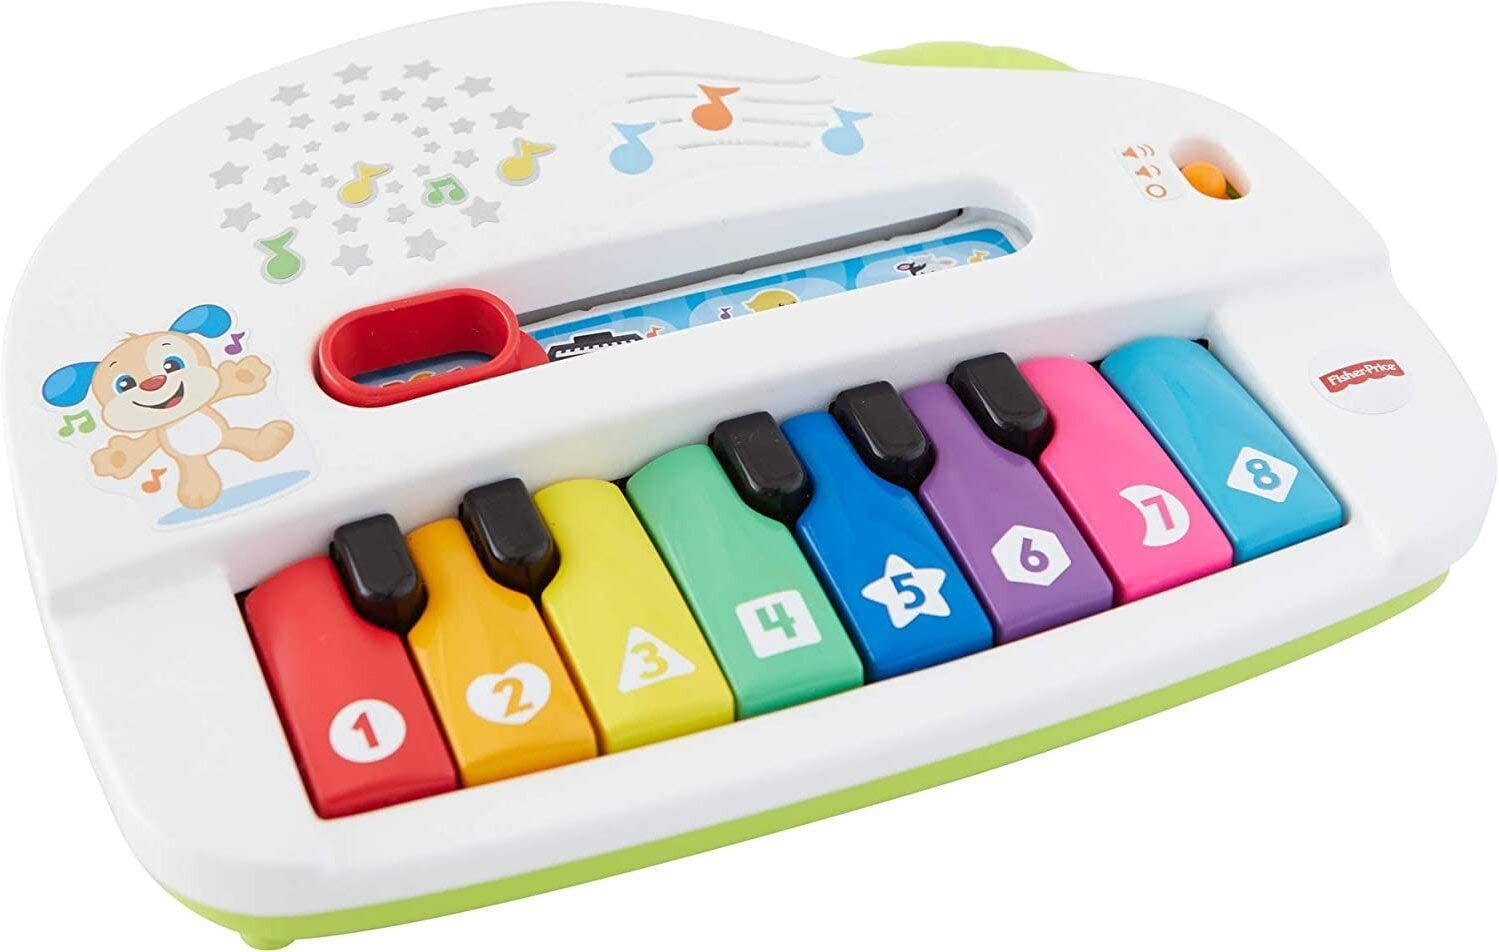 Fisher-Price Laugh Learn Max 41% OFF Silly Piano Tucson Mall Multicol Sounds Light-up